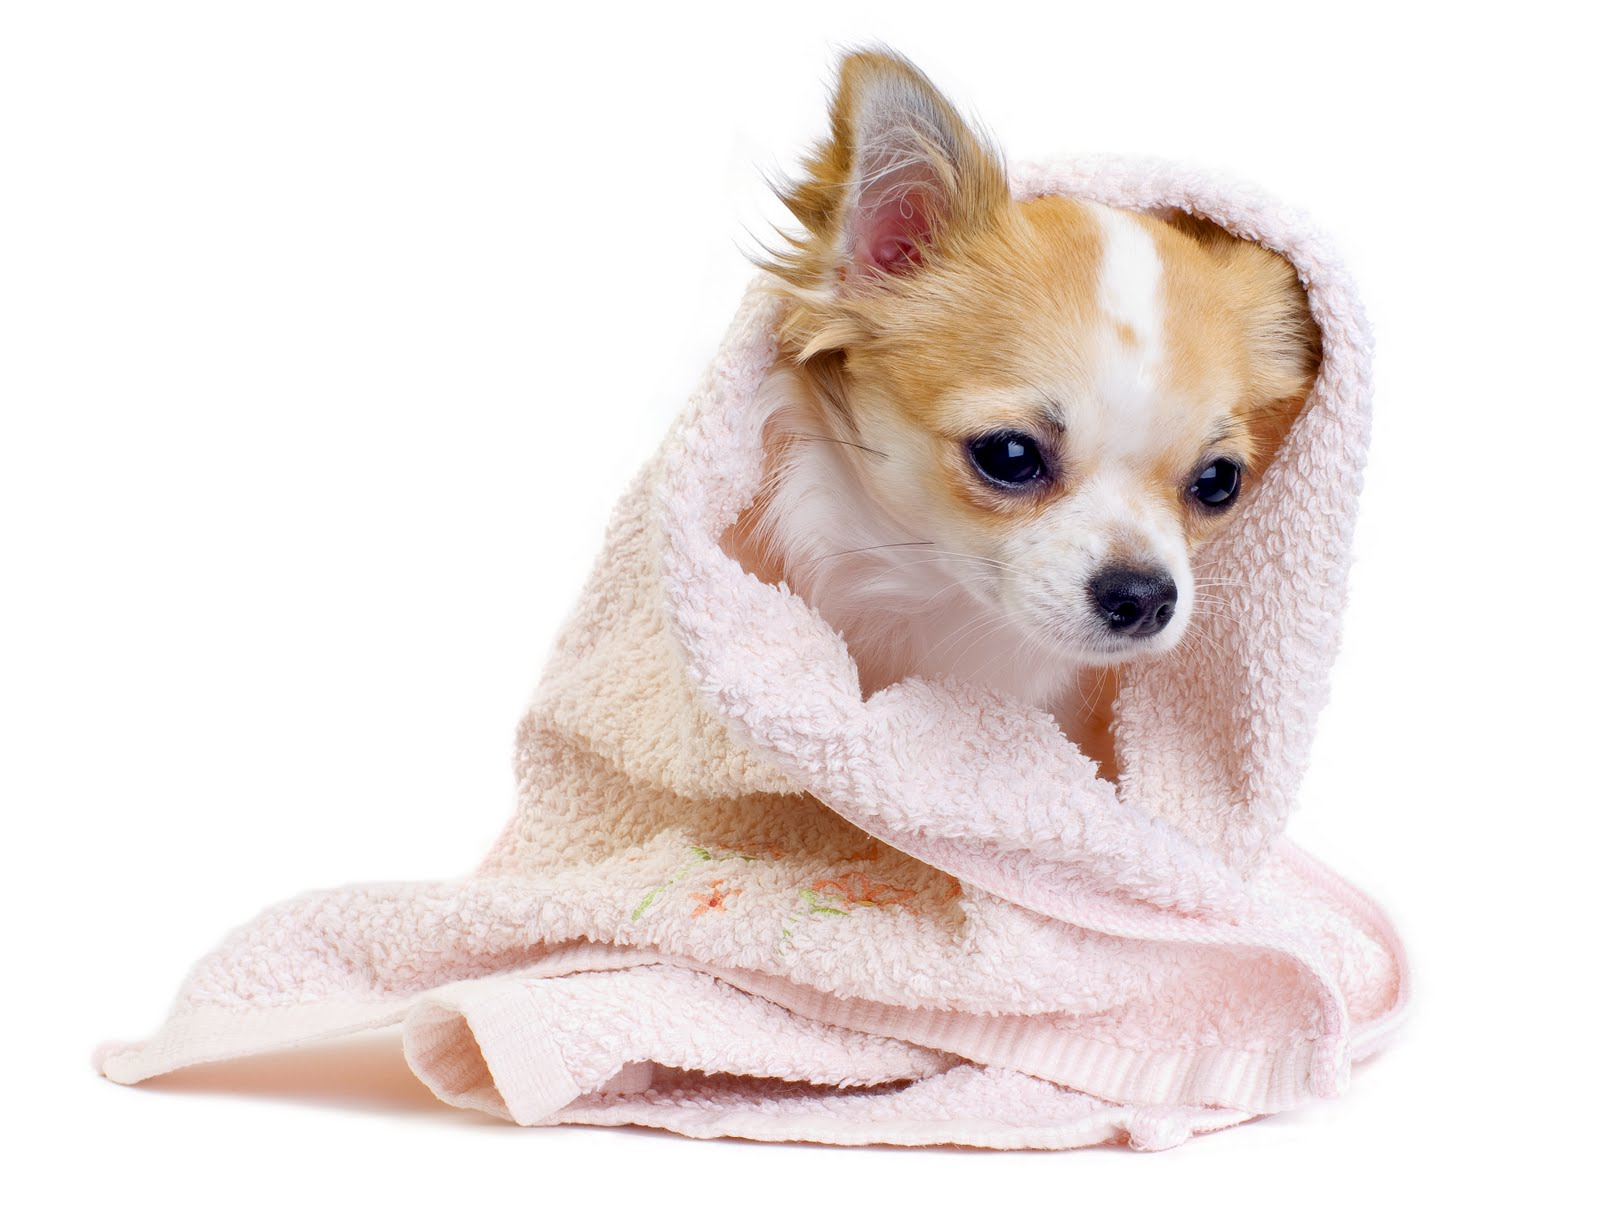 Beauty Cute Dog Wallpaper on this Dogs Wallpapers Backgrounds website 1600x1223